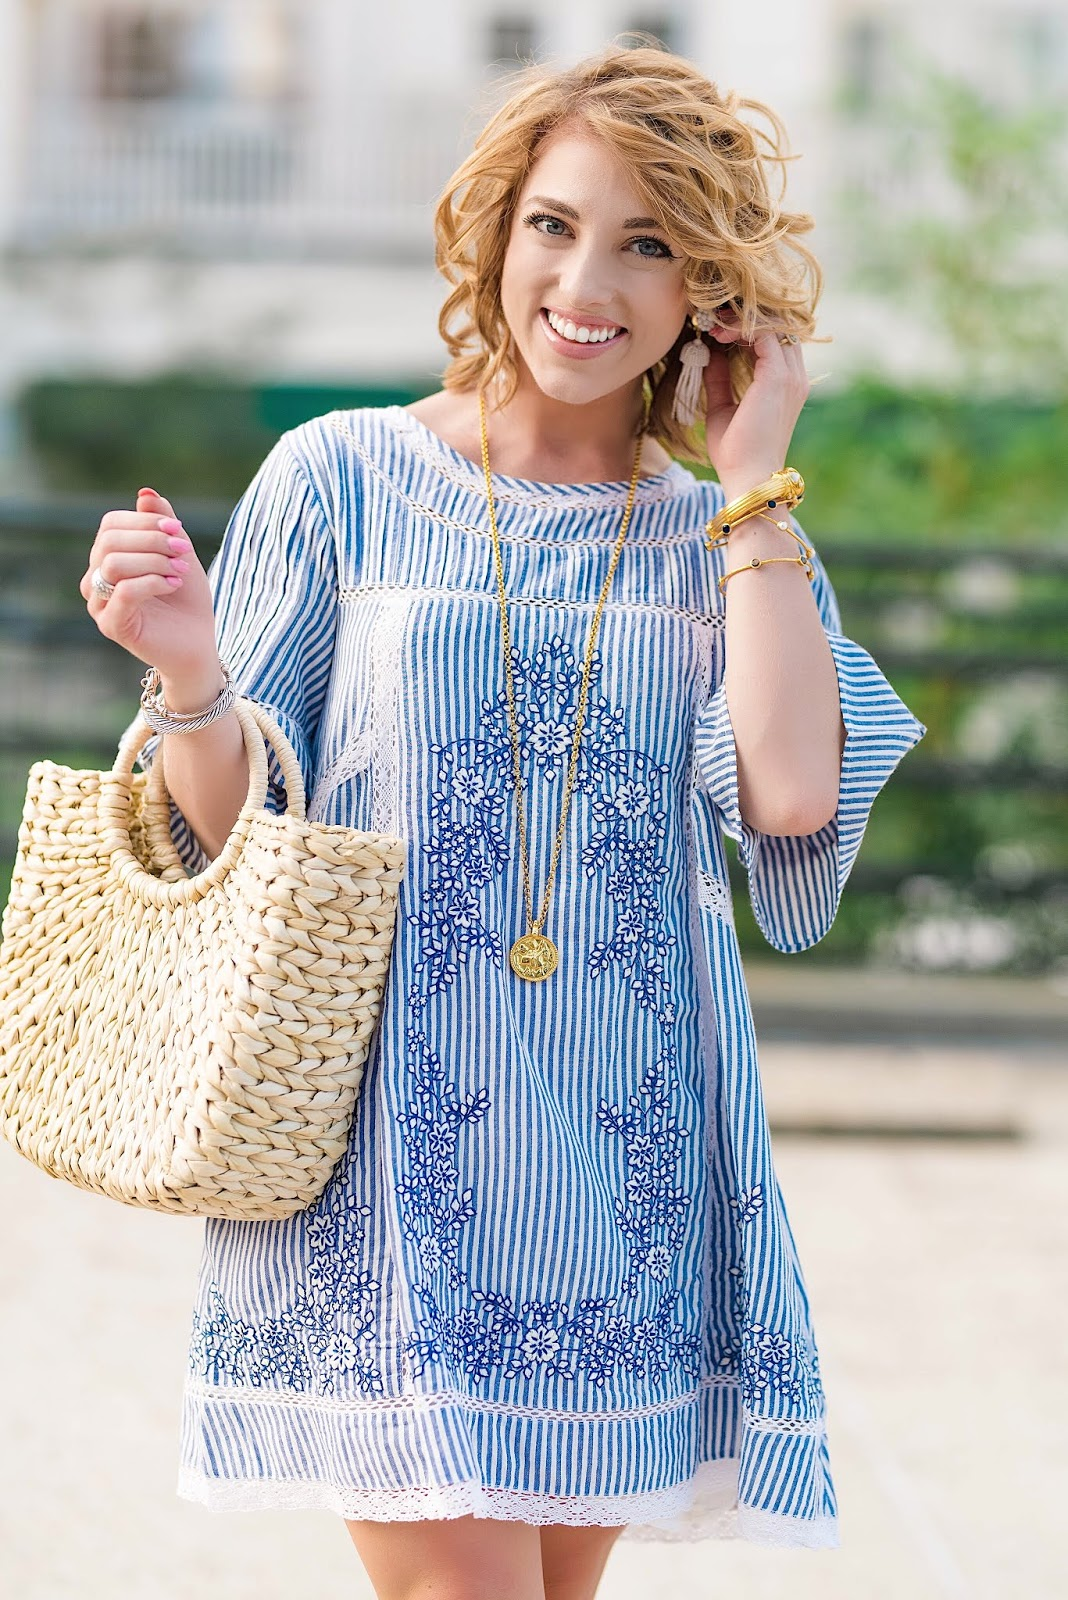 Free People Sunny Day Dress - Something Delightful Blog